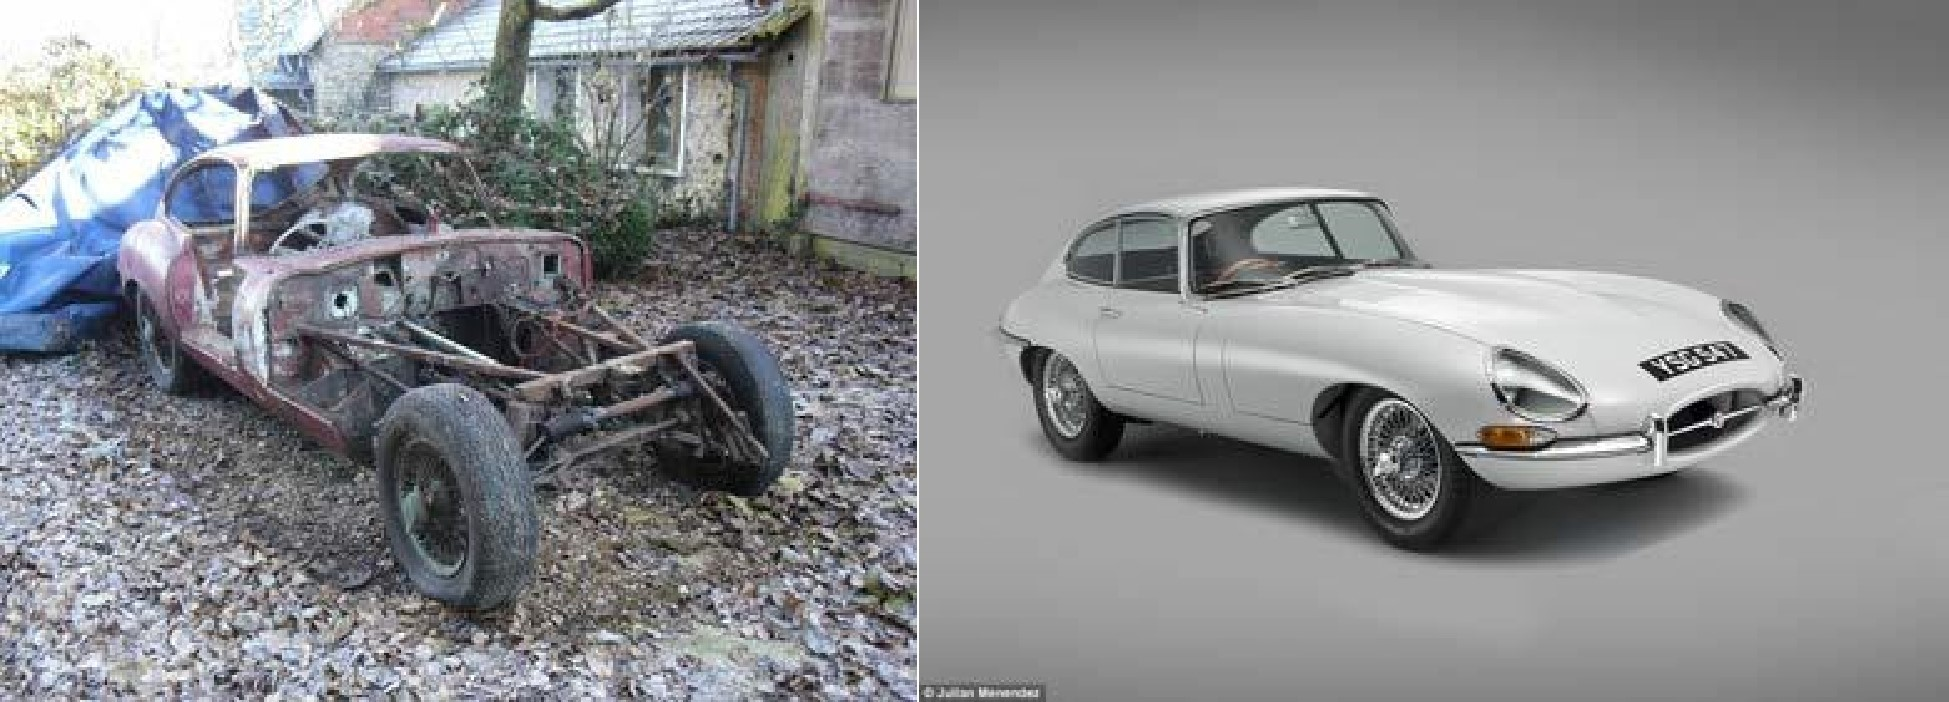 """Discuss your reaction to John sharing that the rusted out """"car"""" (on the left) that is missing its engine and most of the body is worth more than 40k. What does this tell you about how worth and value is determined?"""